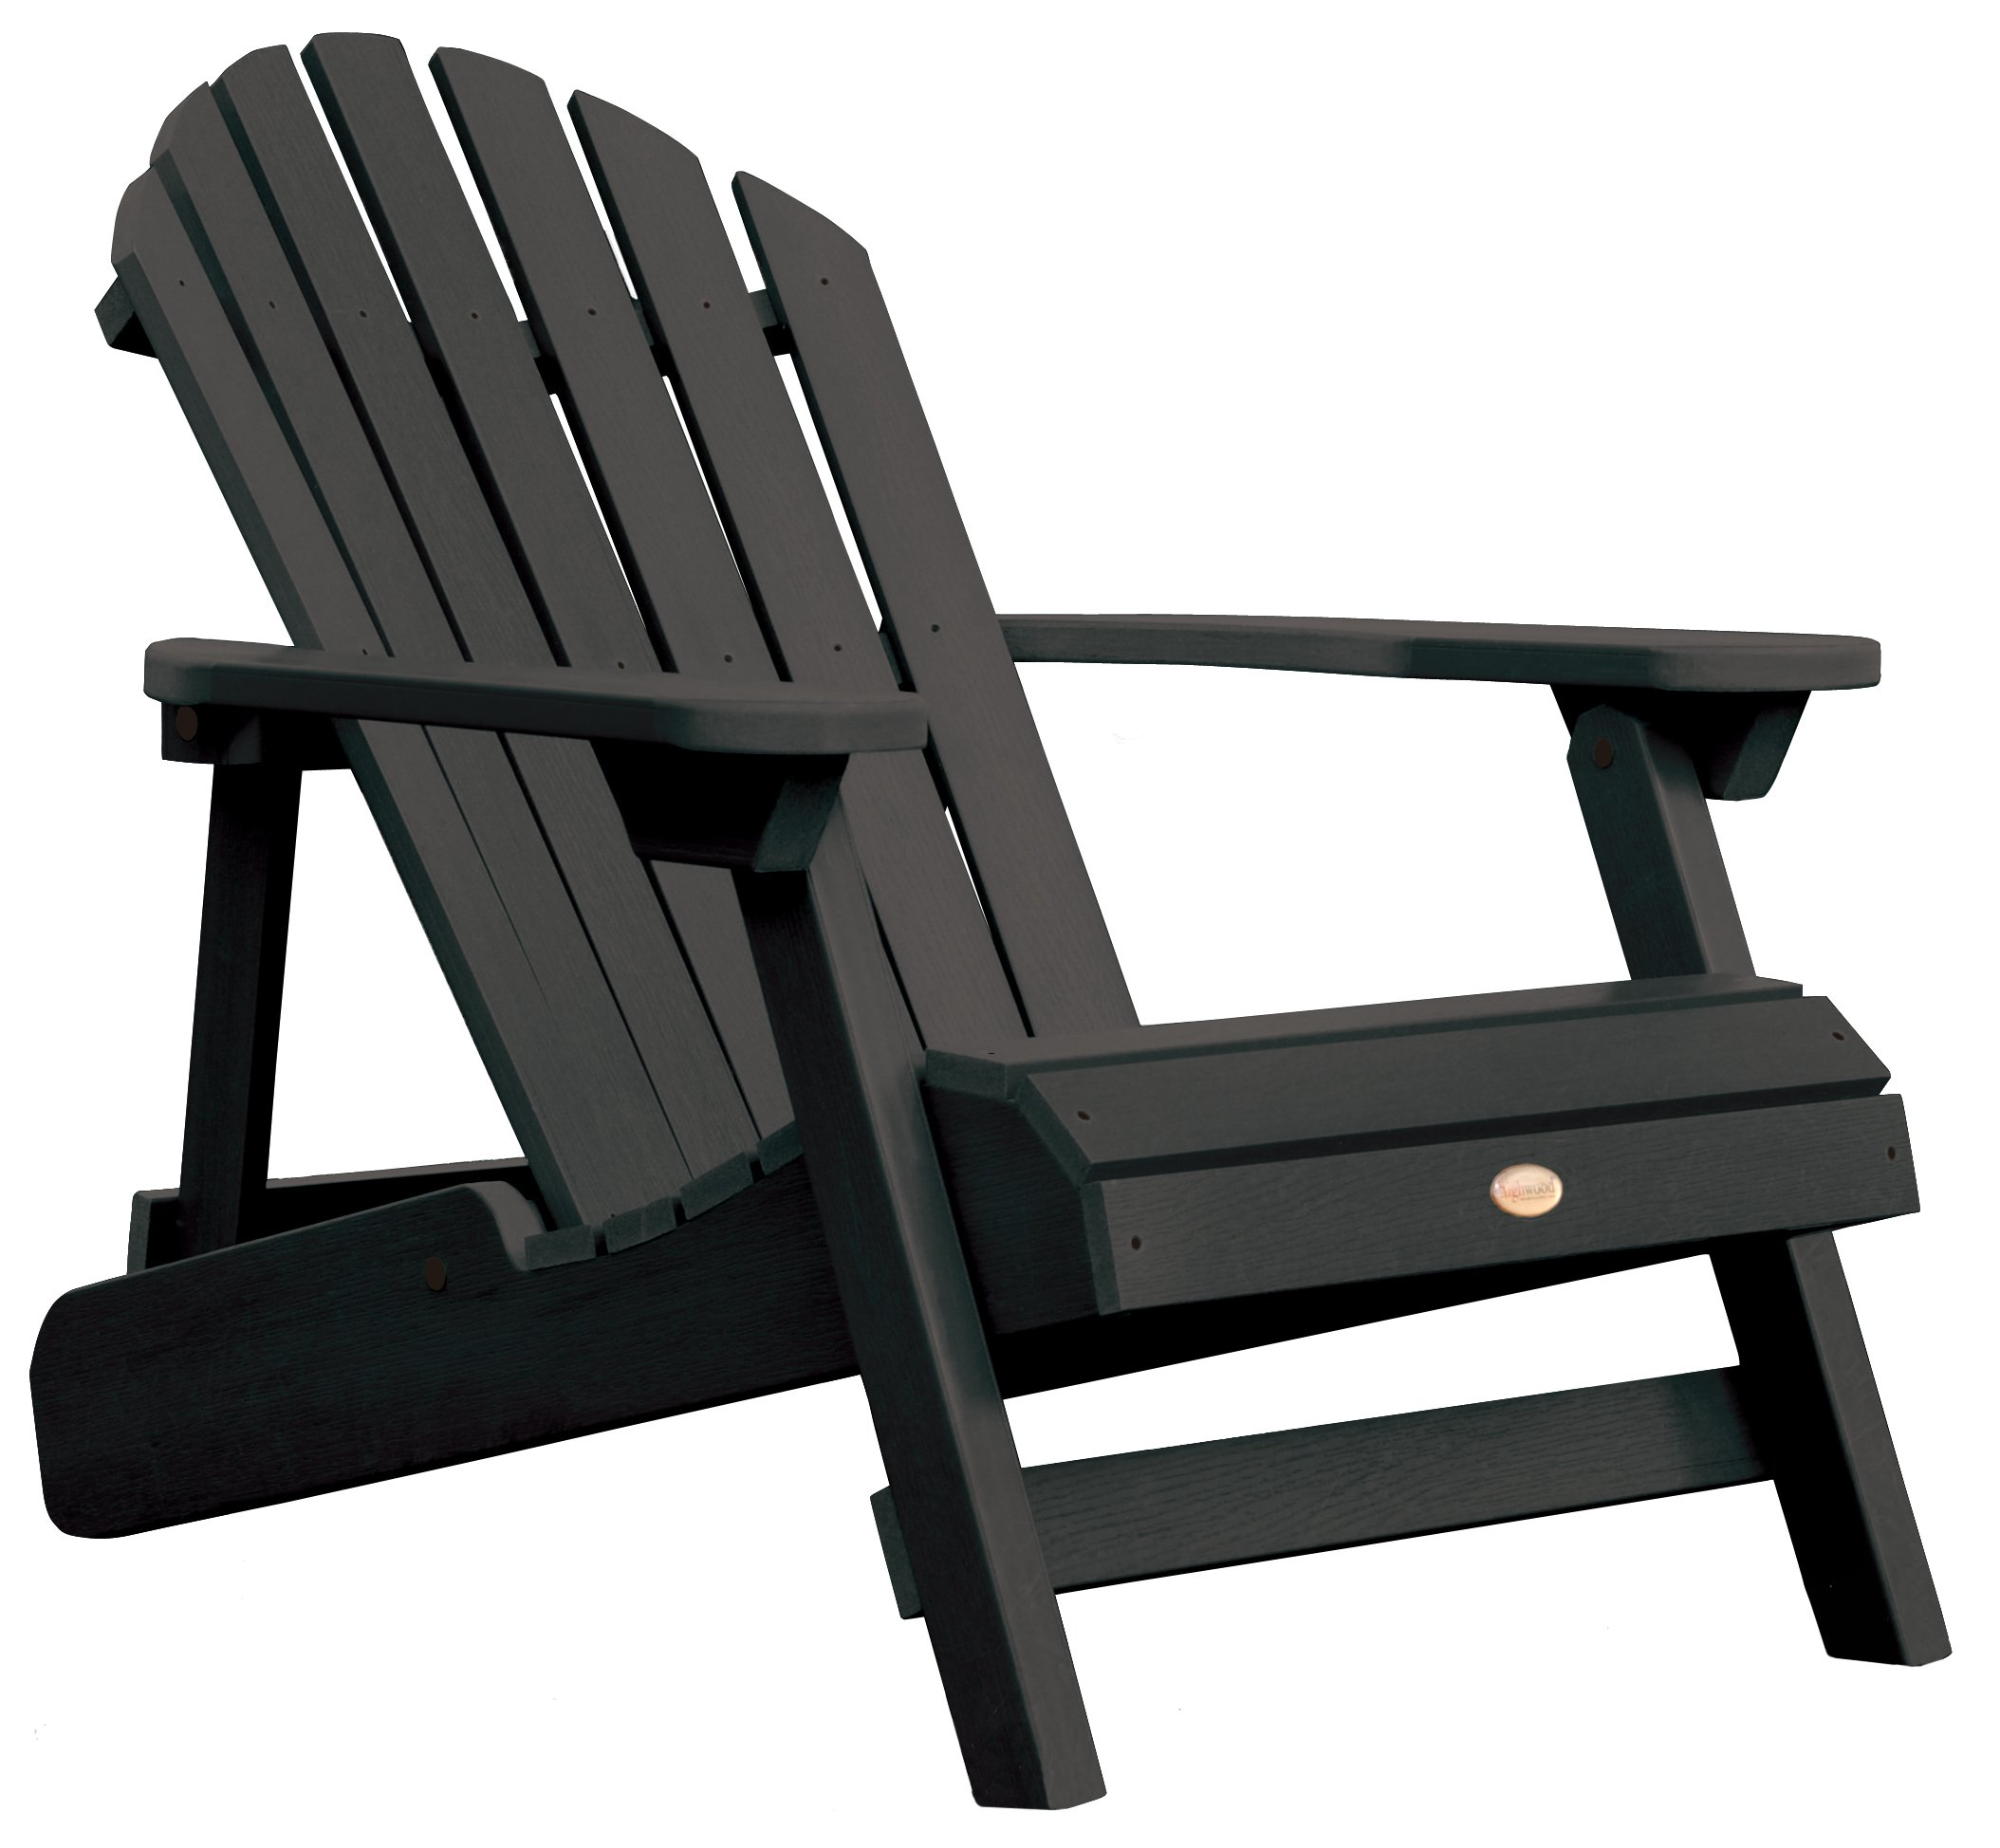 Highwood Hamilton Folding and Reclining Adirondack Chair, Adult Size, Black by Highwood